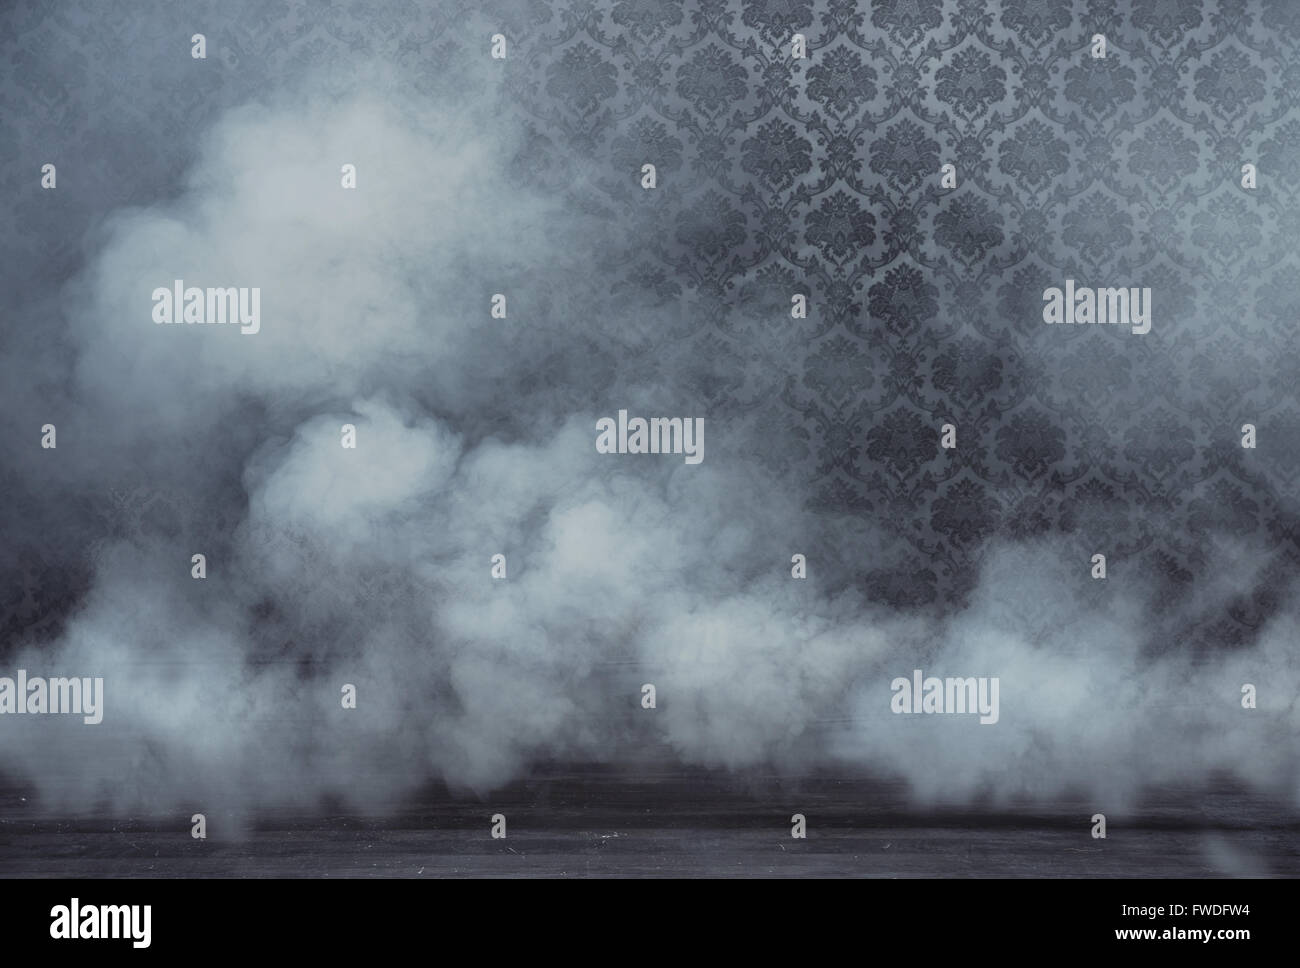 Creepy Shot Of A Smoky Room At Night Stock Photo   Getty Images